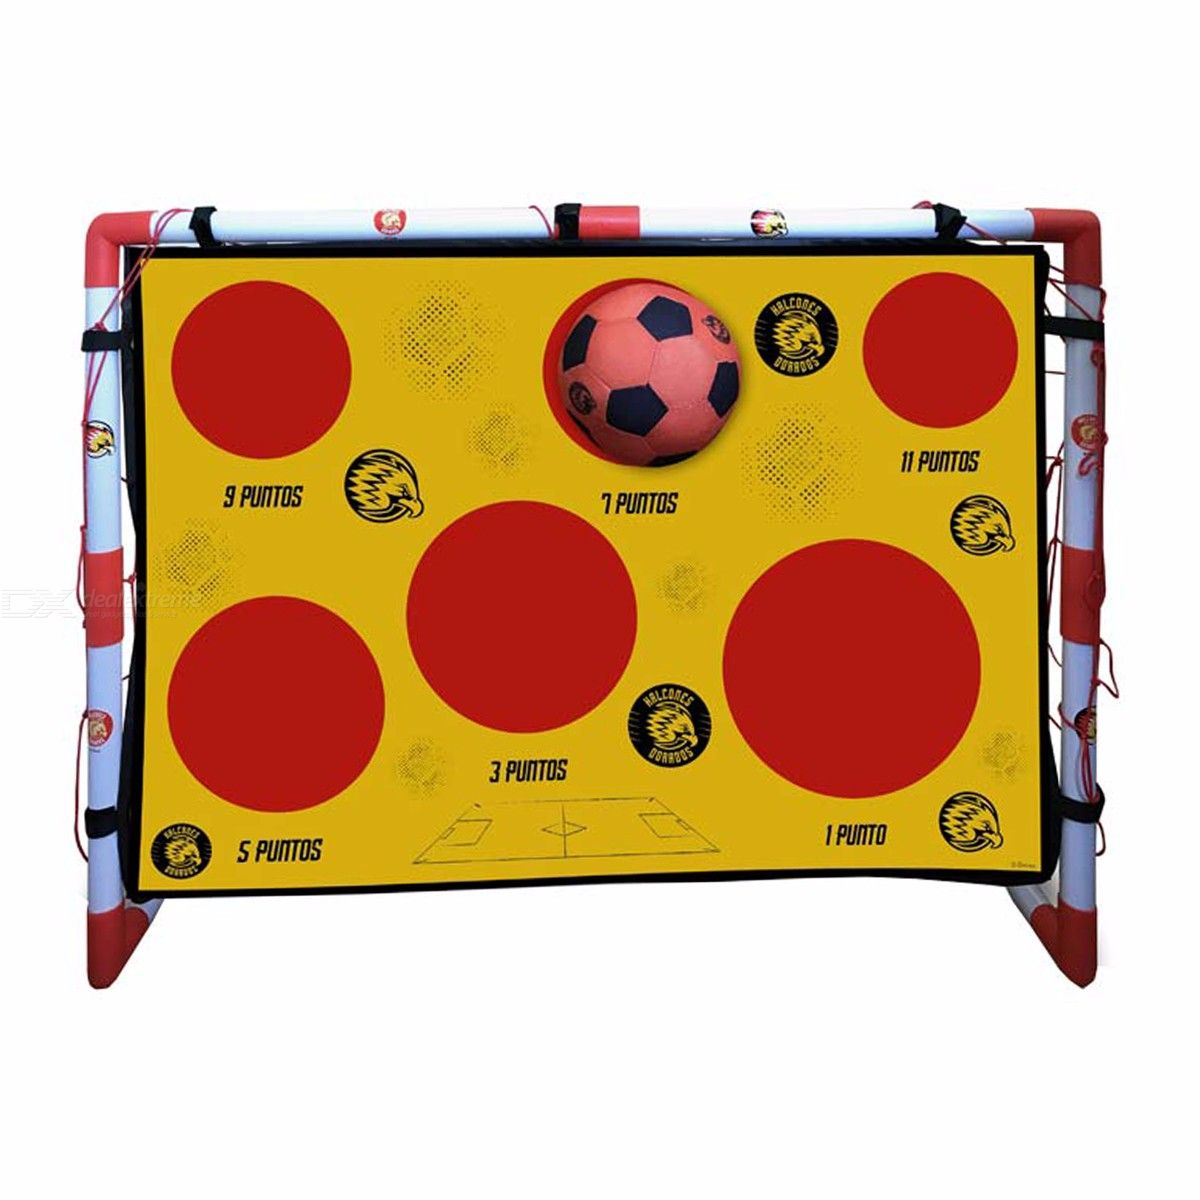 c4f5d24a495c84 Disney 3-in-1 Soccer Training Set For Kids, Kids Football Training Toy - Free  shipping - DealExtreme